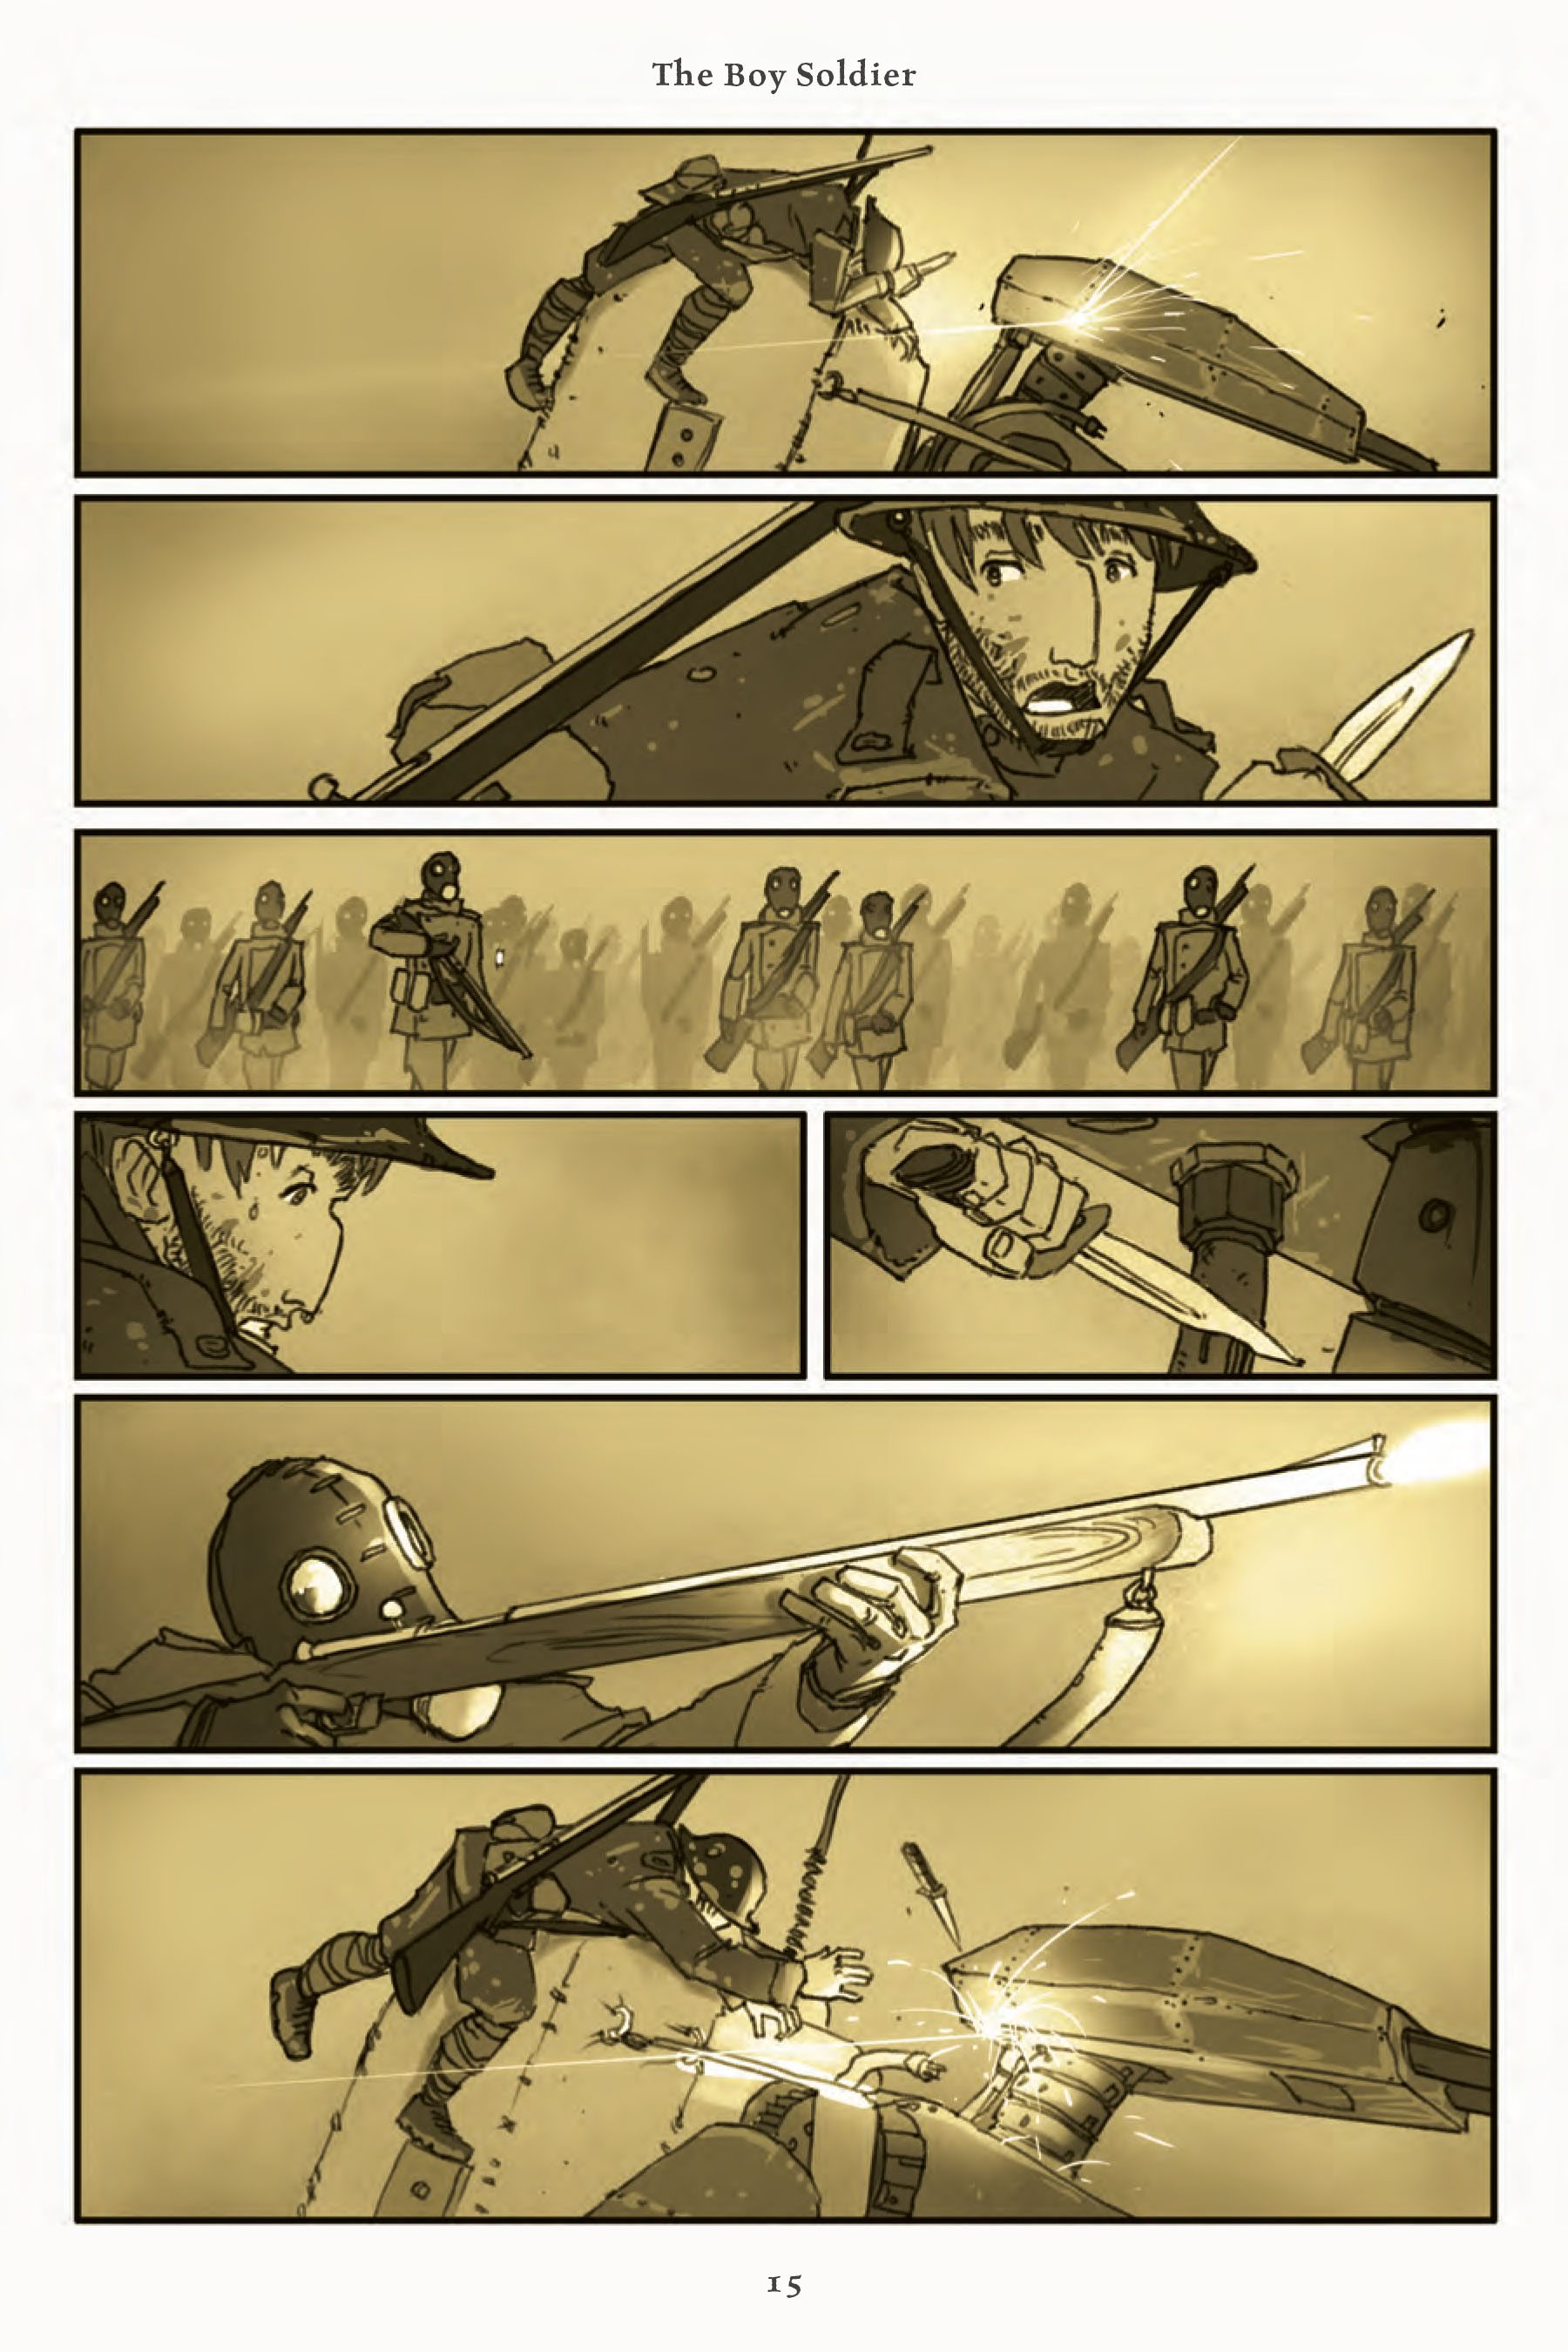 Rust_The_Boy_Soldier_TP_Page_15